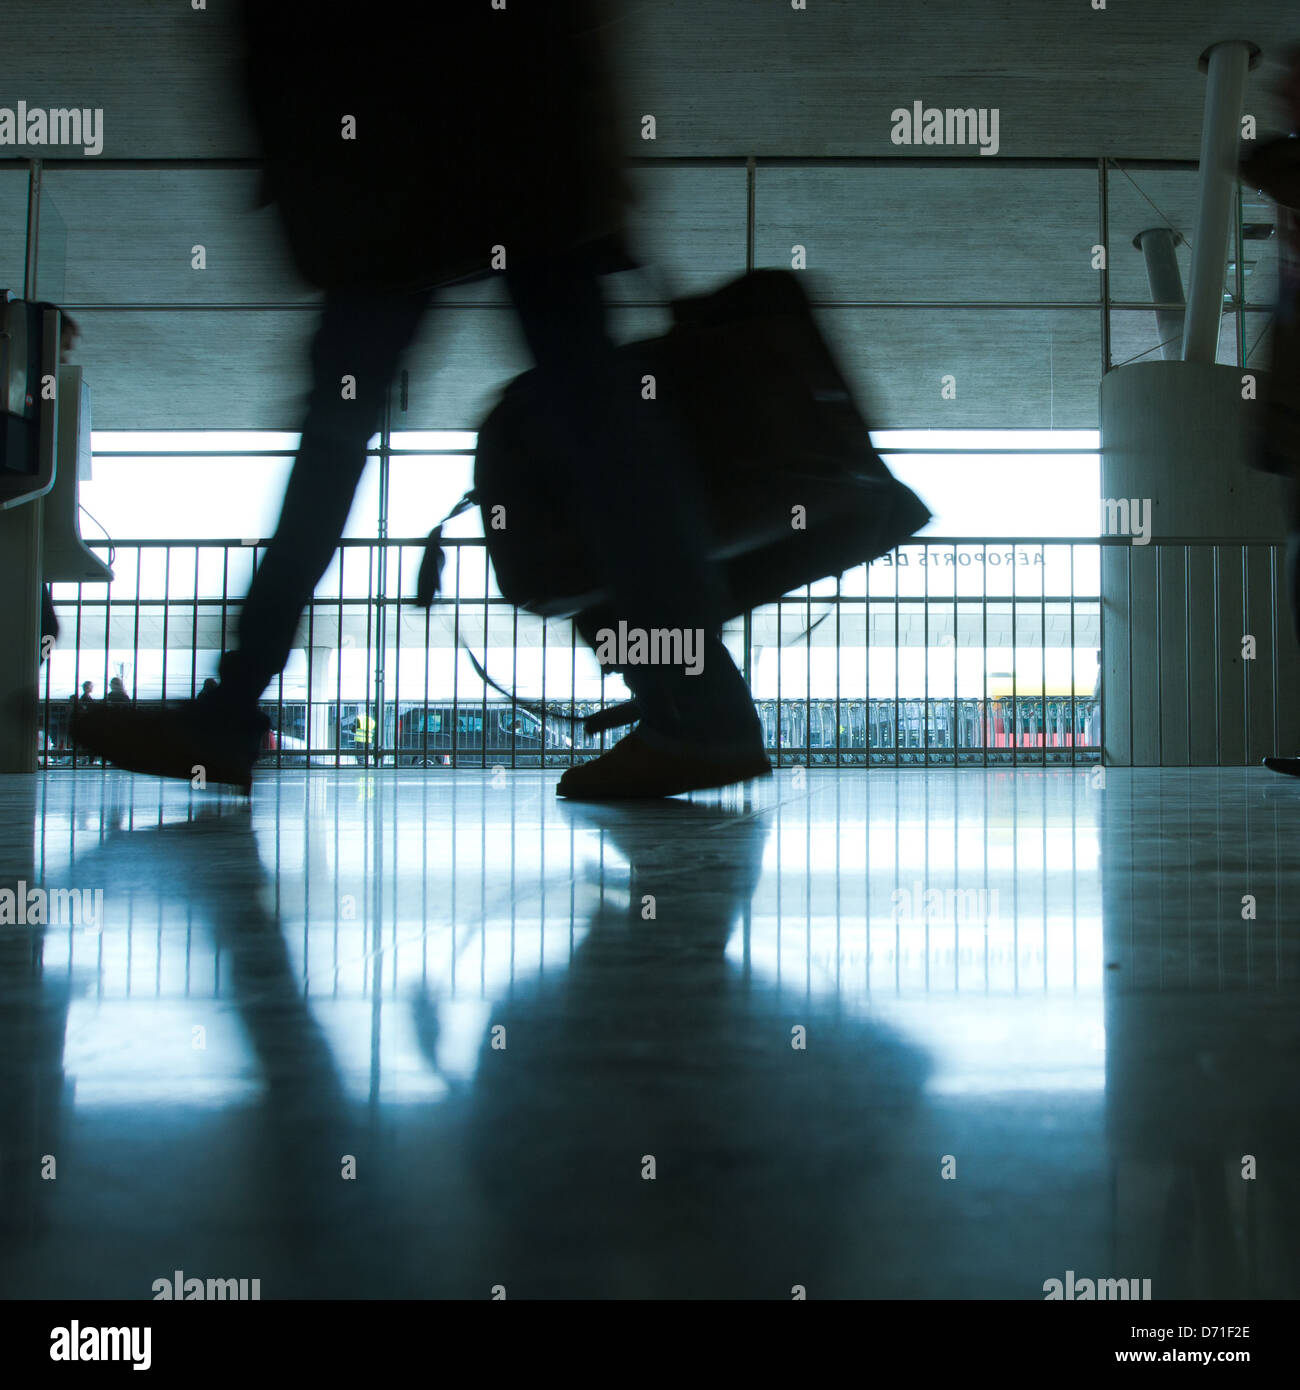 abstract airport and silhouette of walking person with luggage Stock Photo